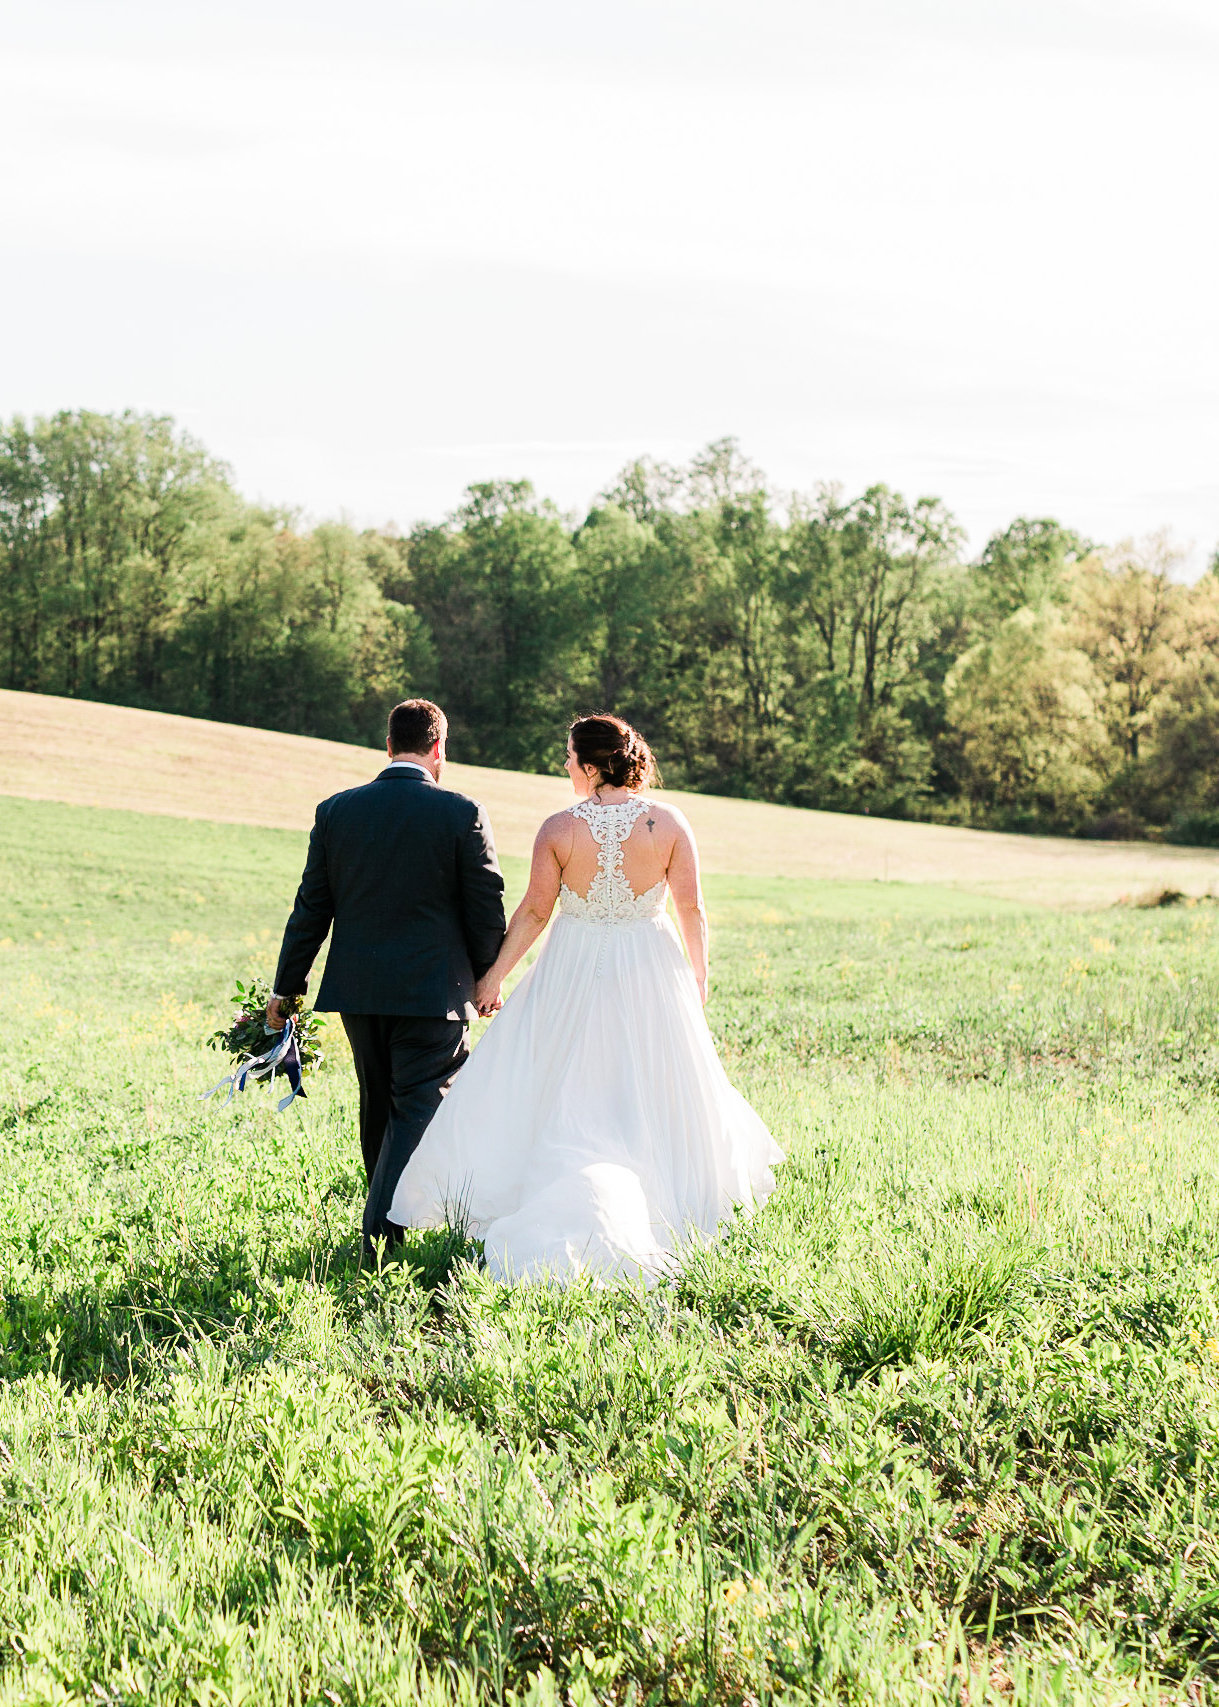 Bride with flowing dress and groom in a gray suit walking away in a bright field. Maryland Wedding.